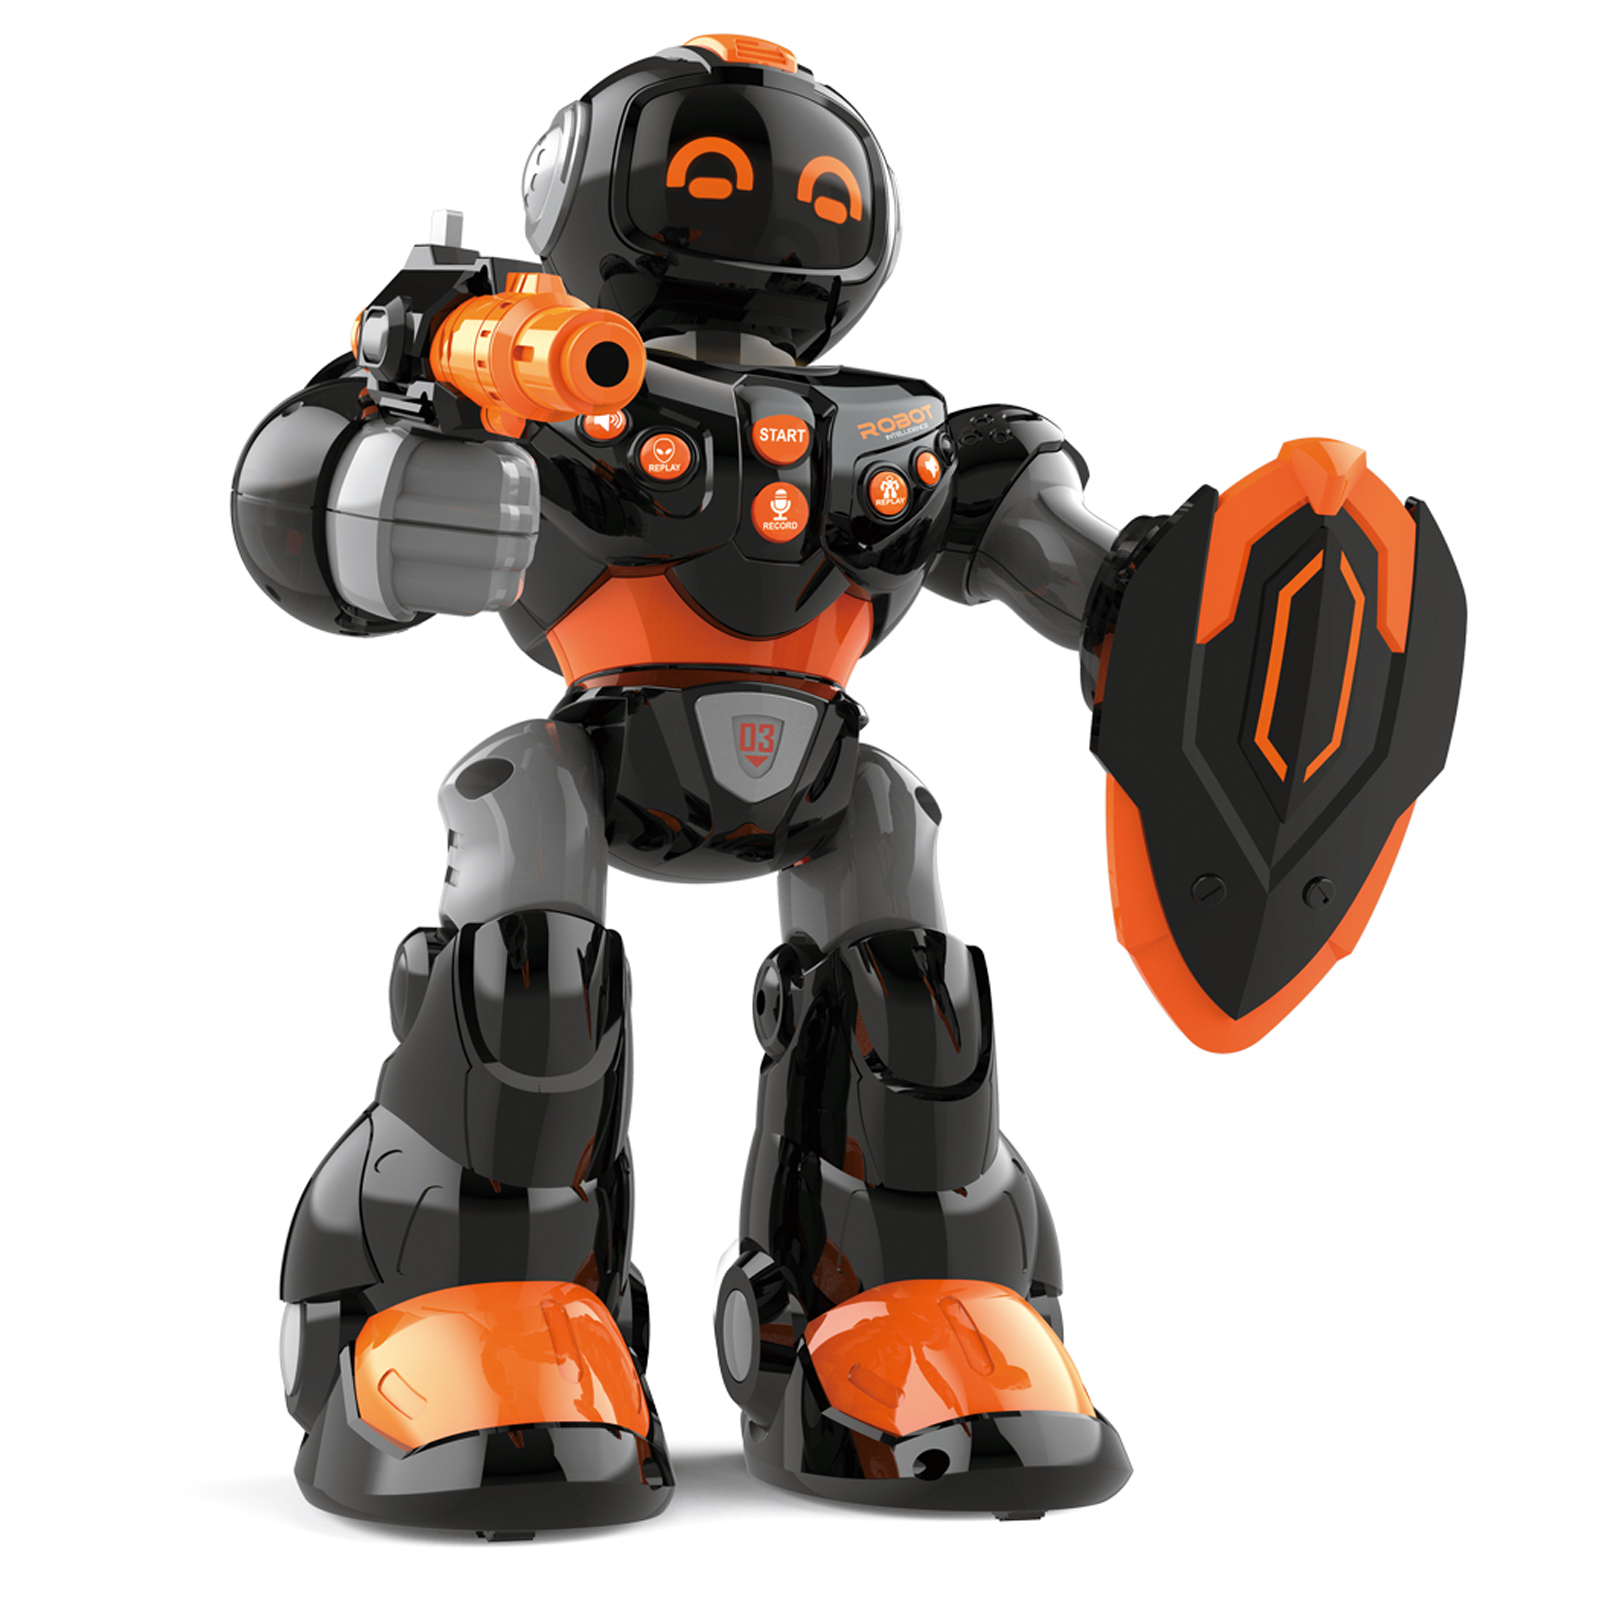 Armor Robot with Light and Sound Black